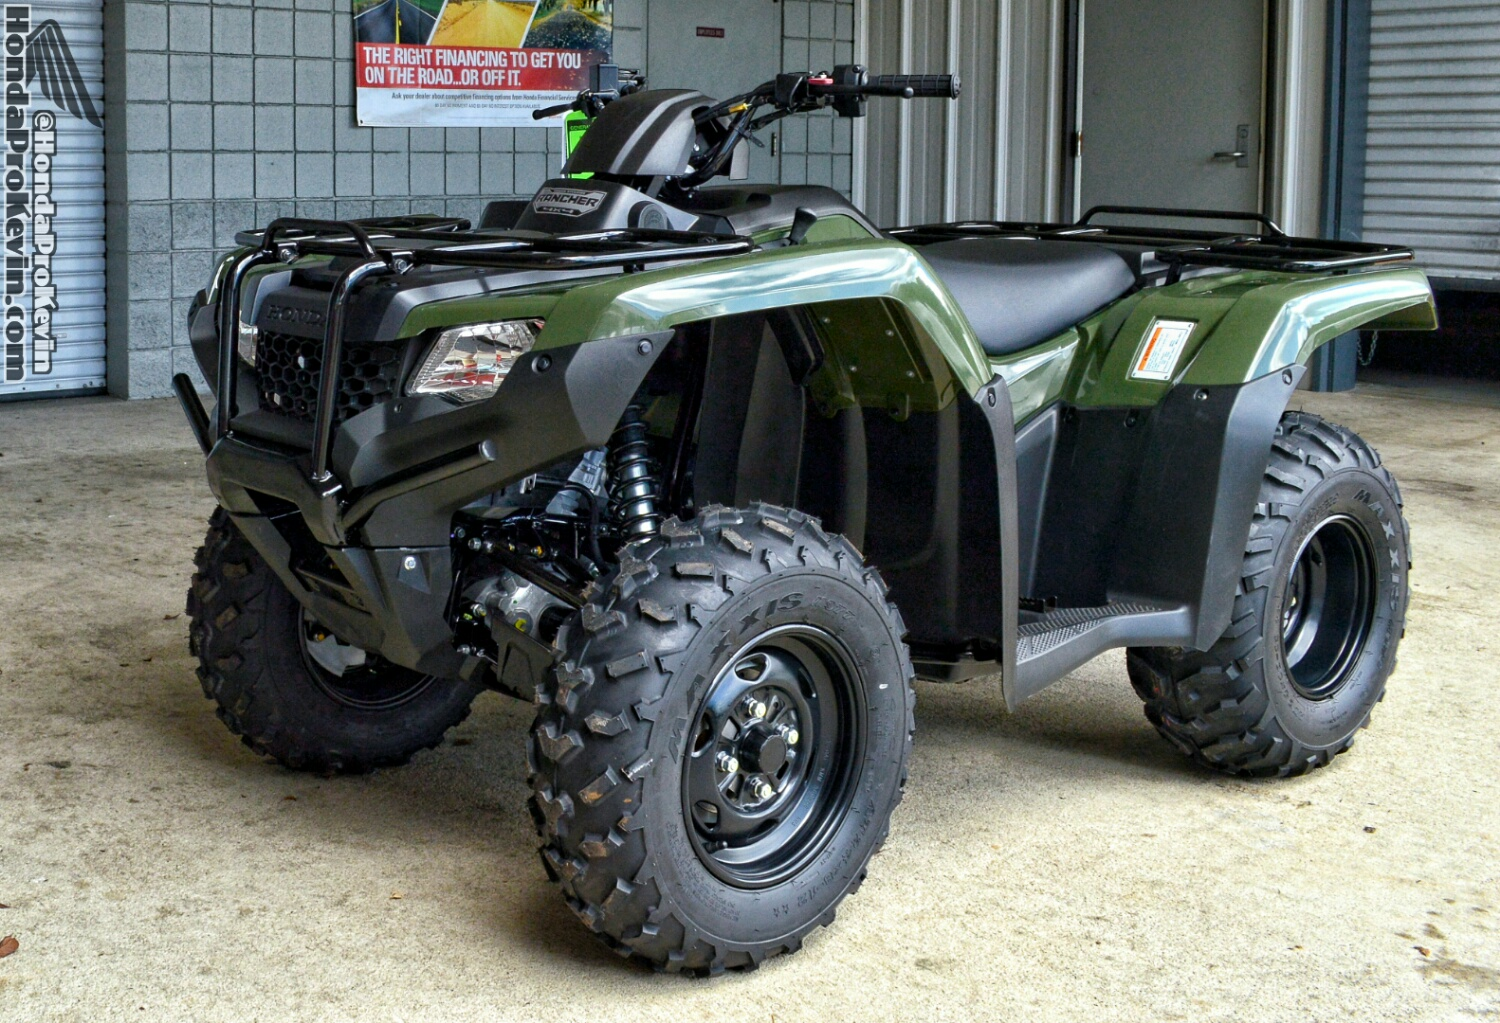 2021 Honda Rancher 420 ATV Specs Review - Price / Price / Colors / Horsepower & Performance Rating / 4x4 Four Wheeler / Quad